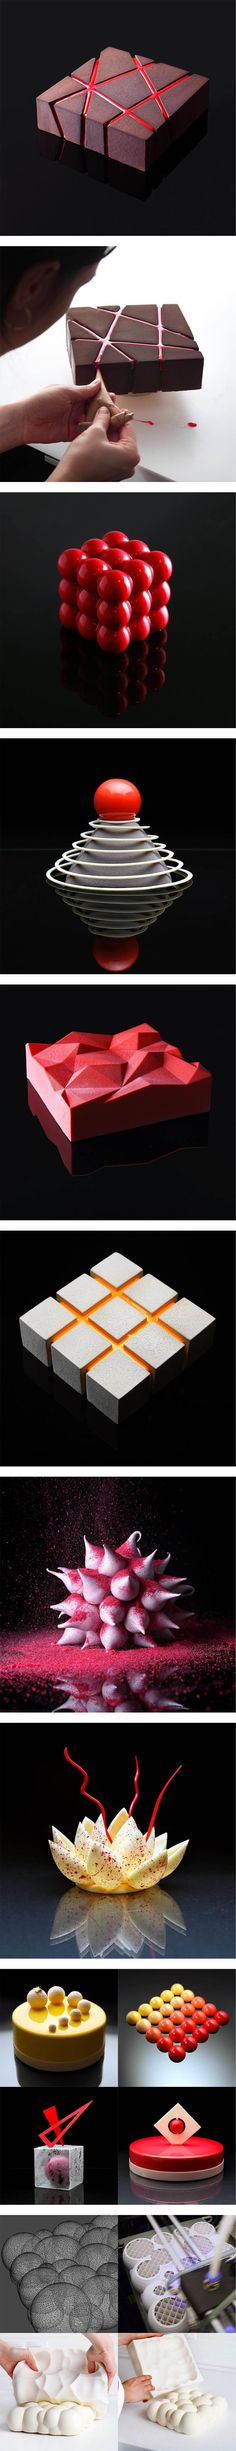 Unusual Geometric Cake Designs by Dinara Kasko